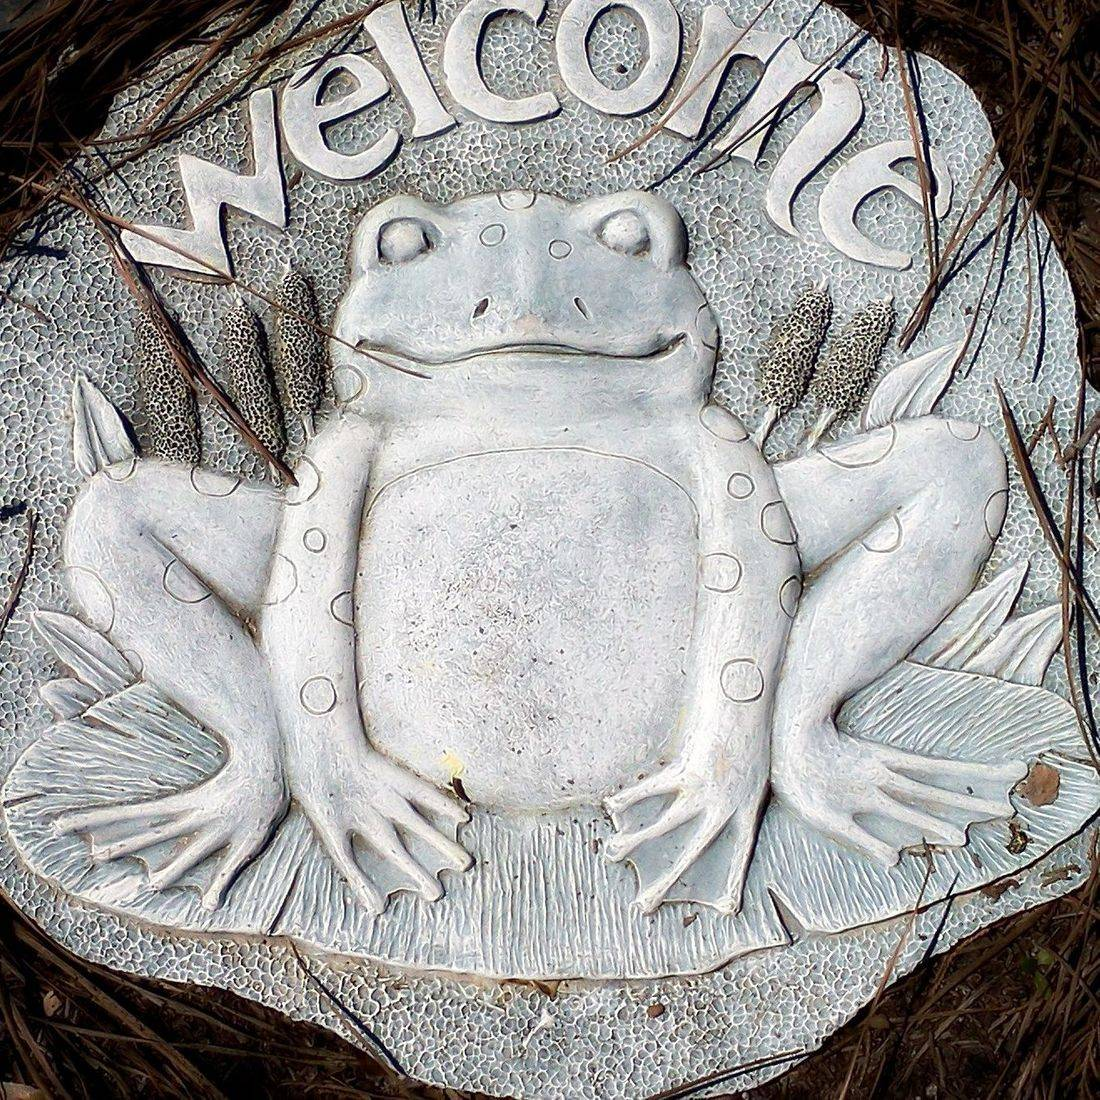 Welcome, Frog, Stone, Pine